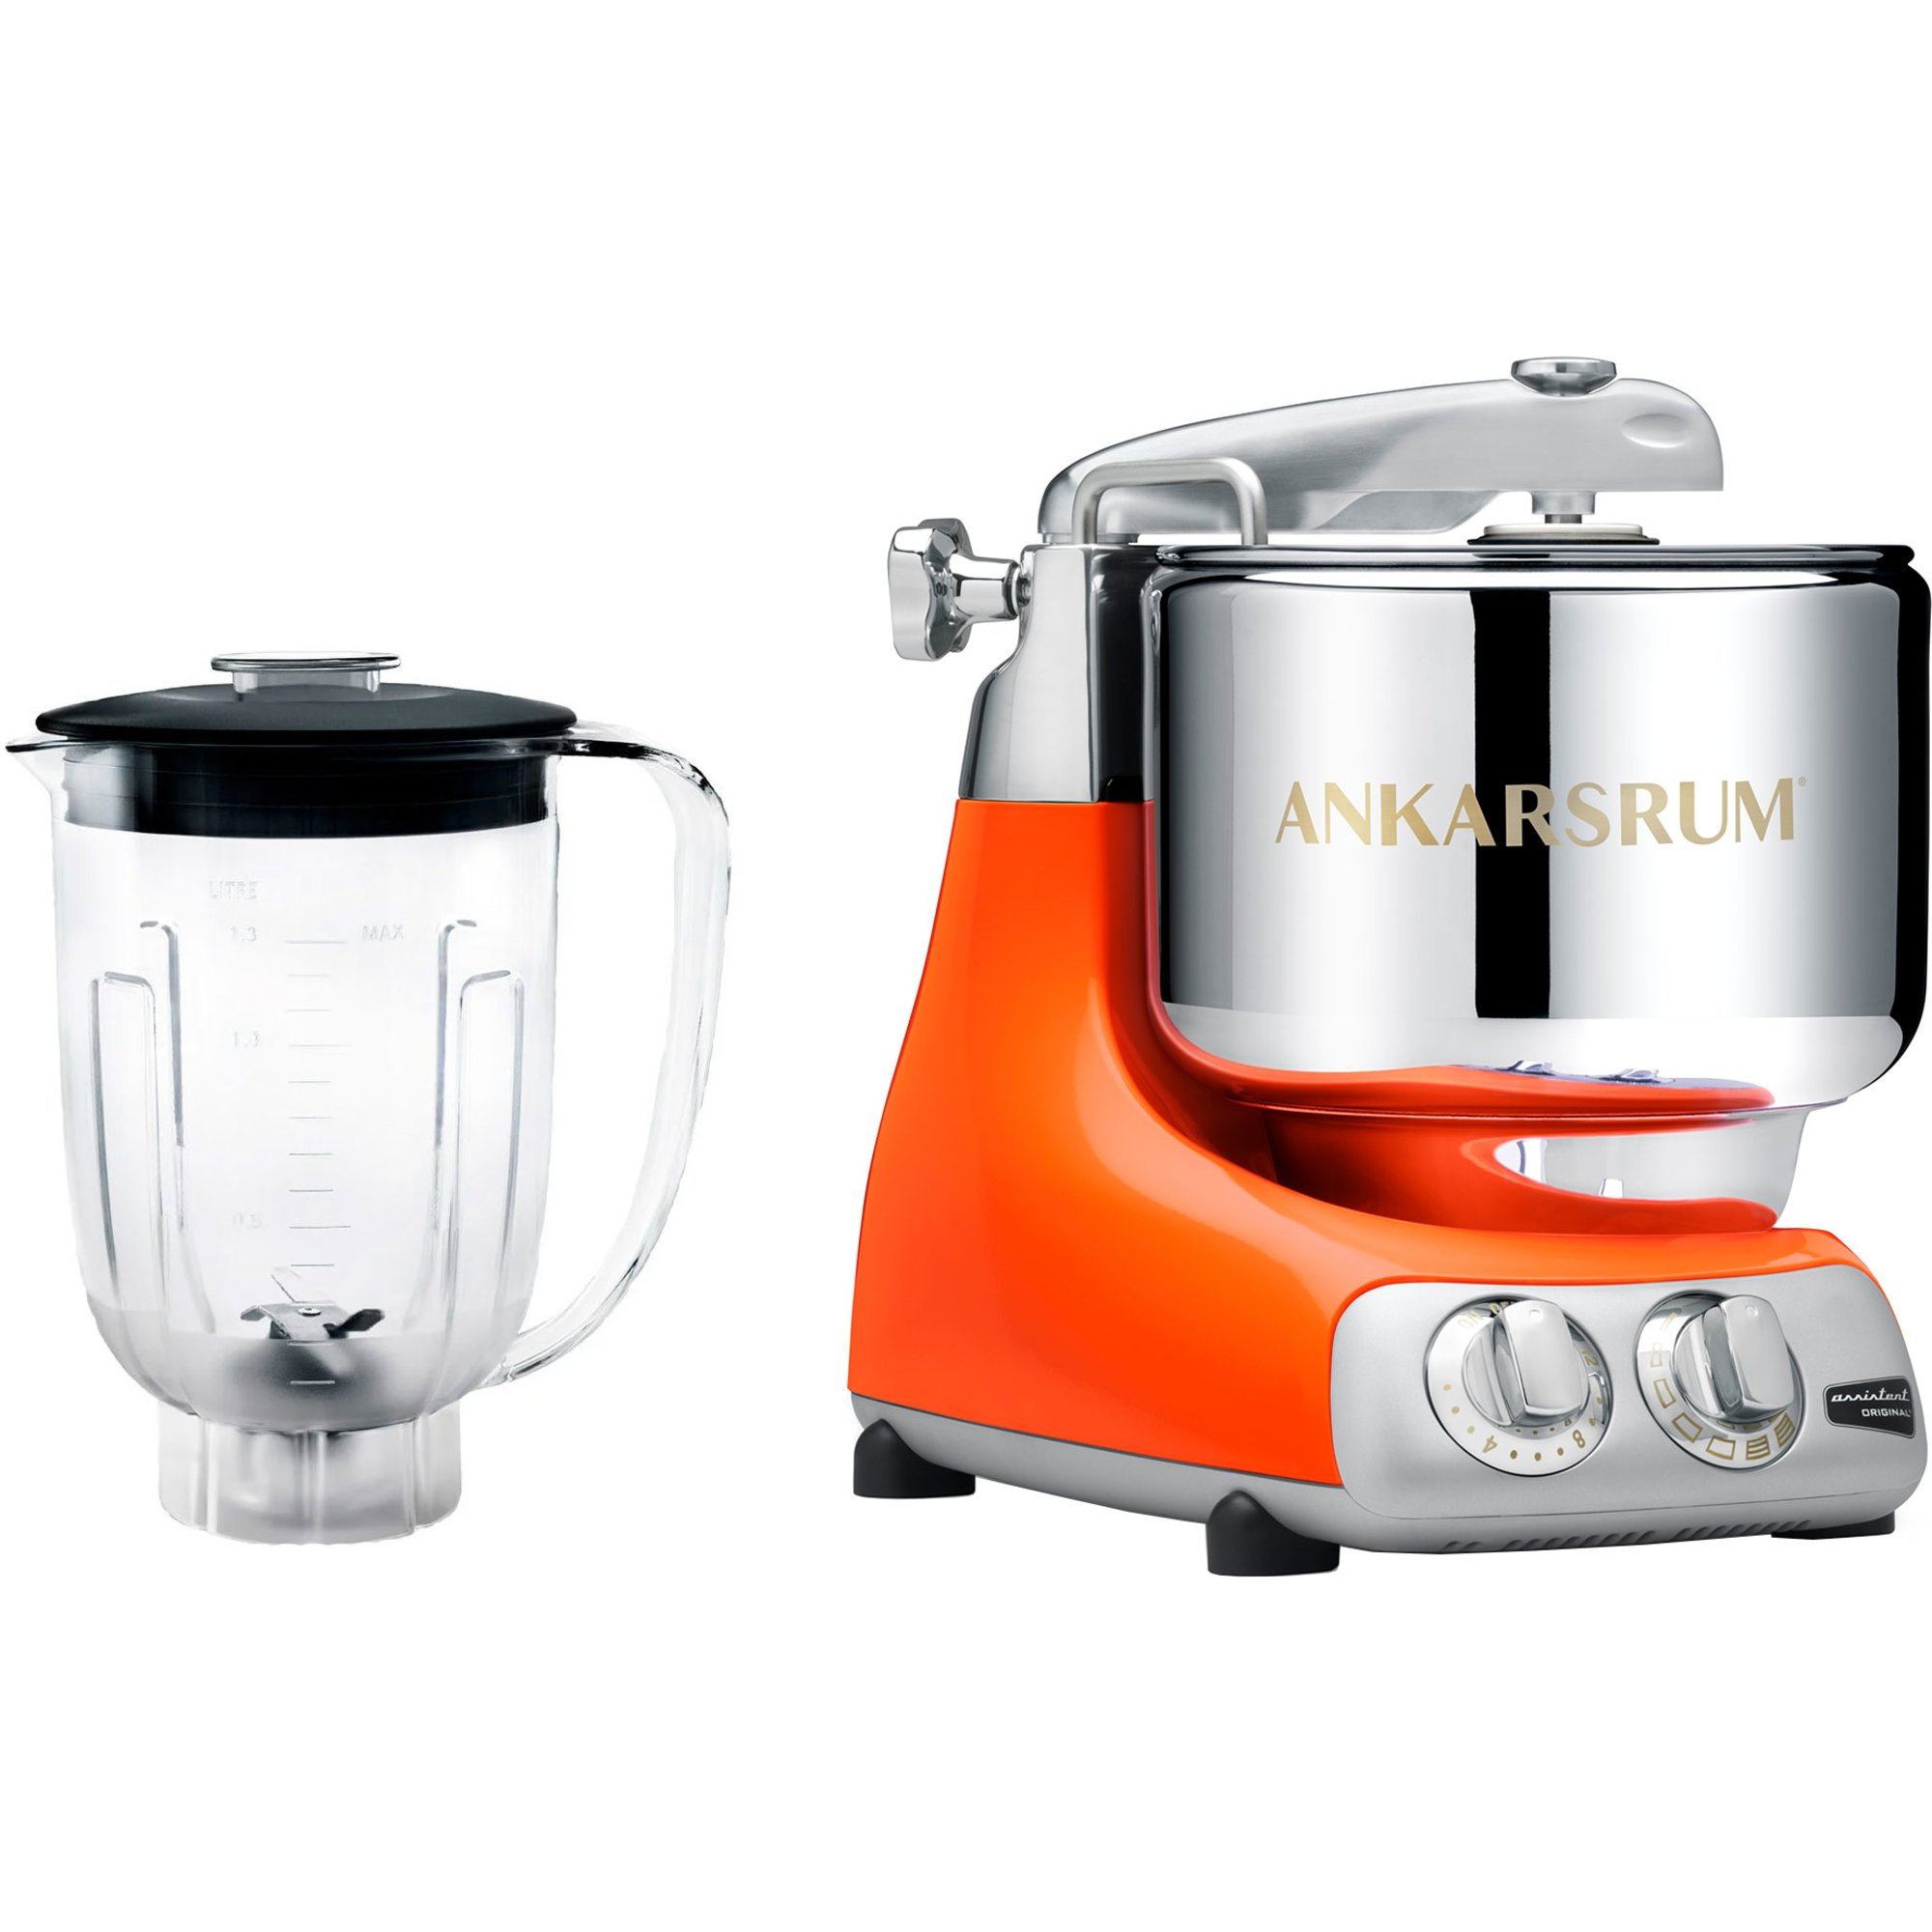 Ankarsrum Assistent Original Pure Orange AKM6230 PO med Blender i Tritan